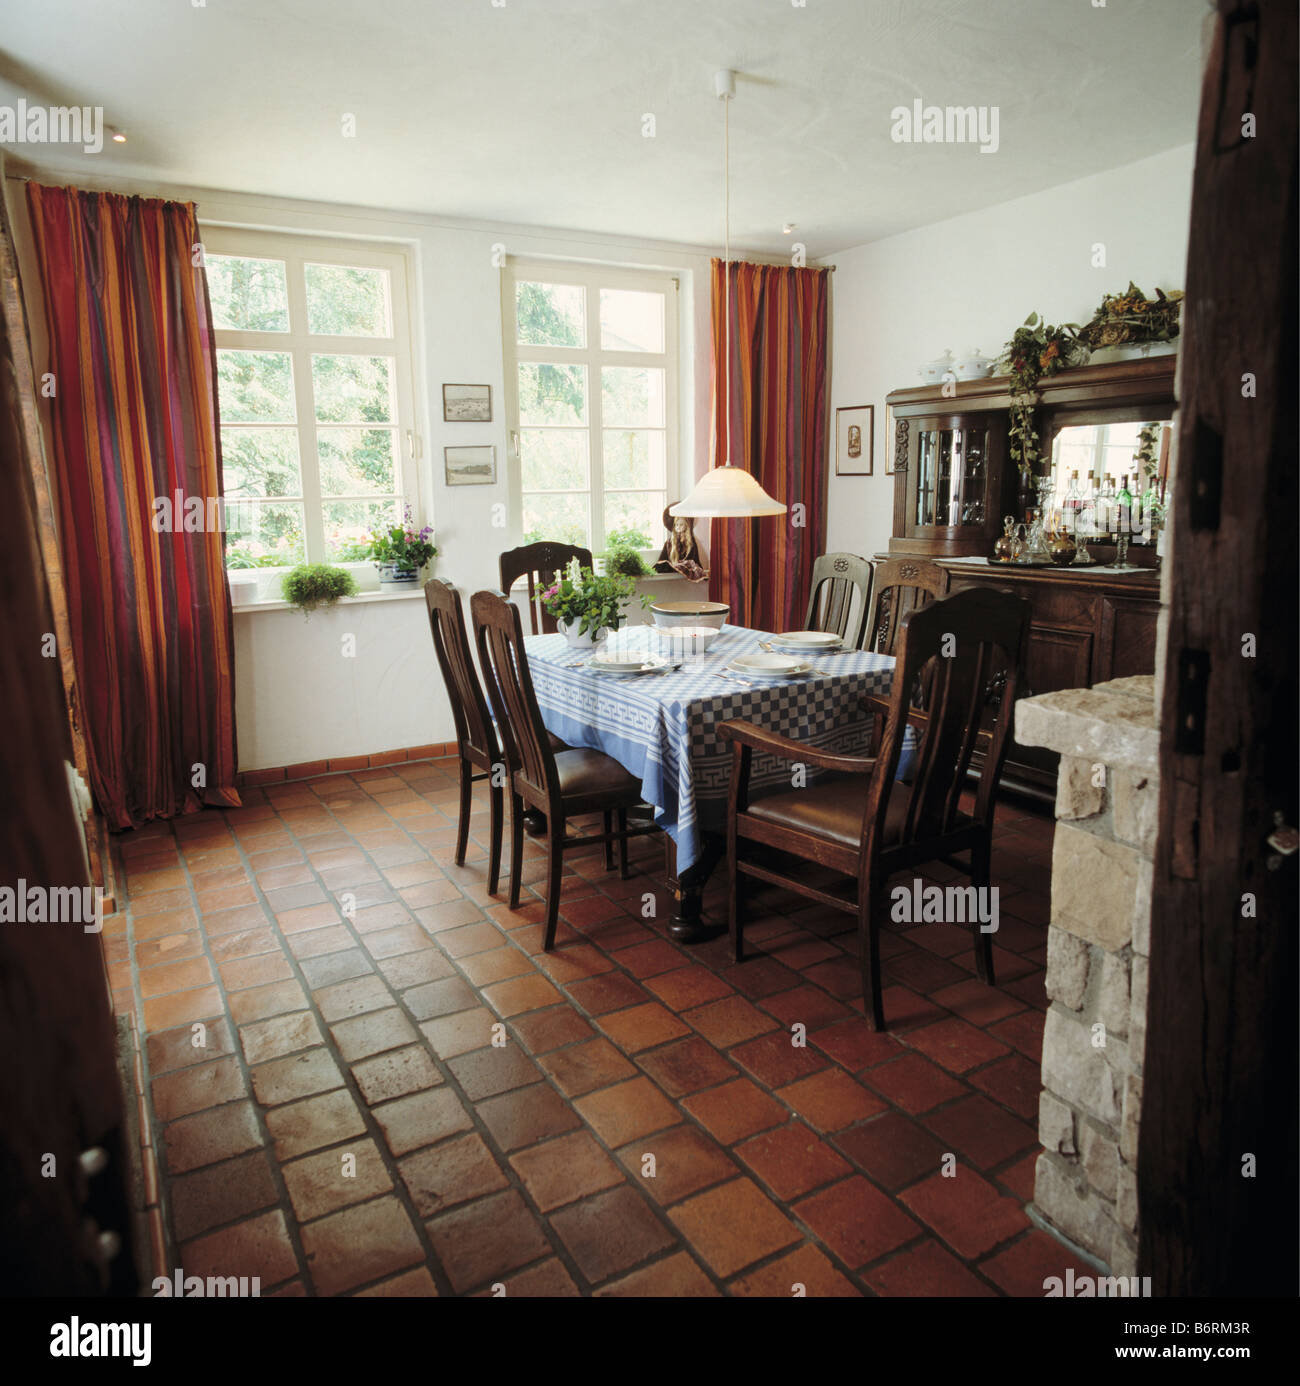 Terracotta Tiled Floor In Country Dining Room With Red Curtains